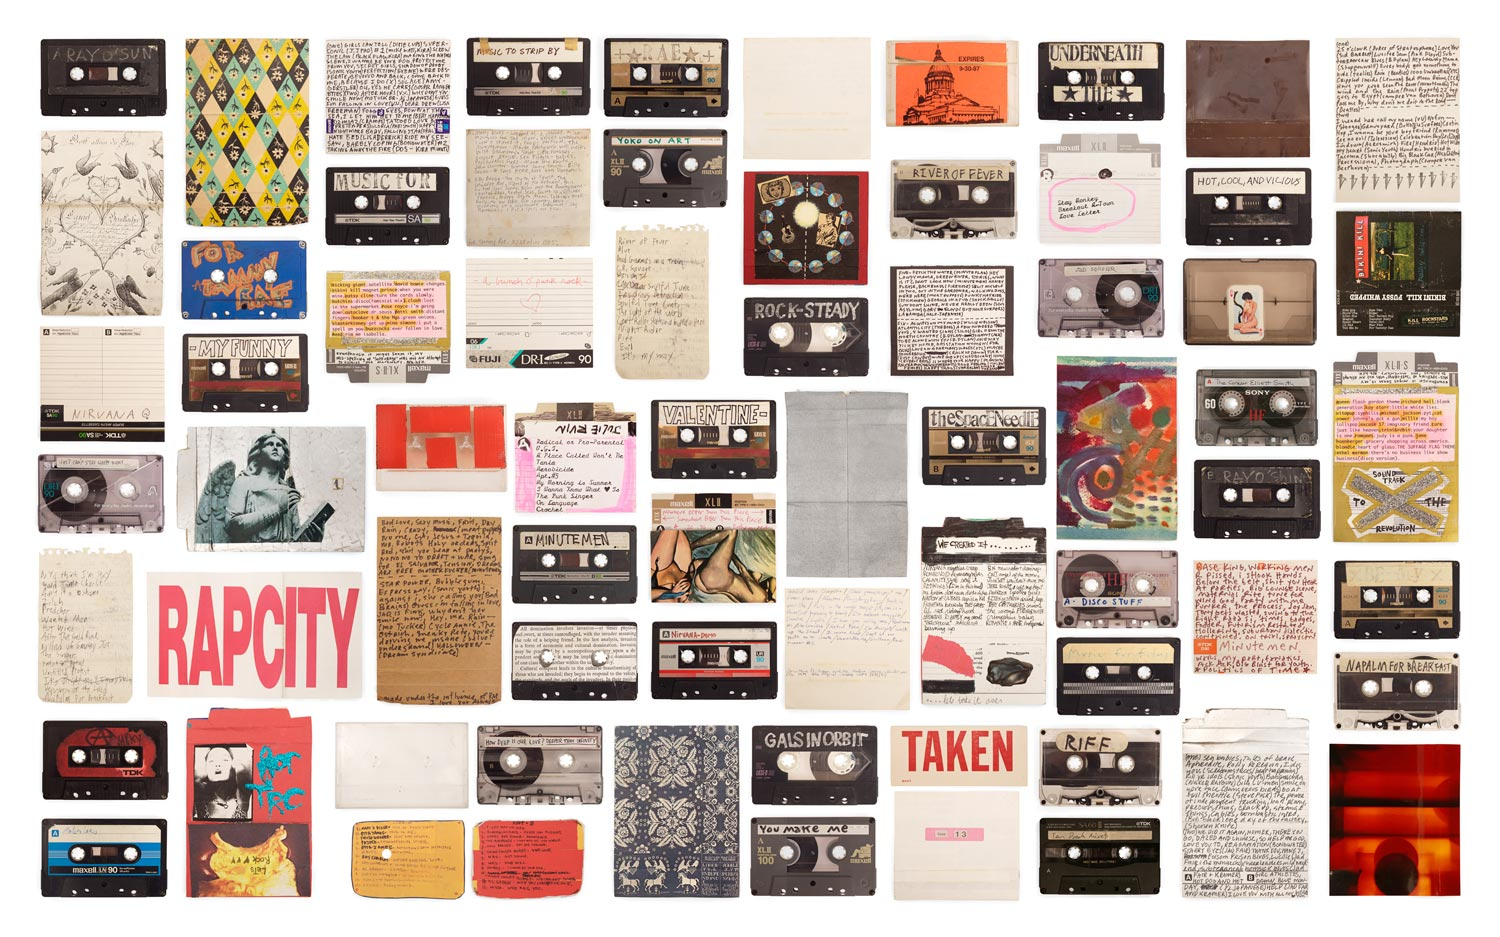 a collage of mixtapes and letters relating to queer themes